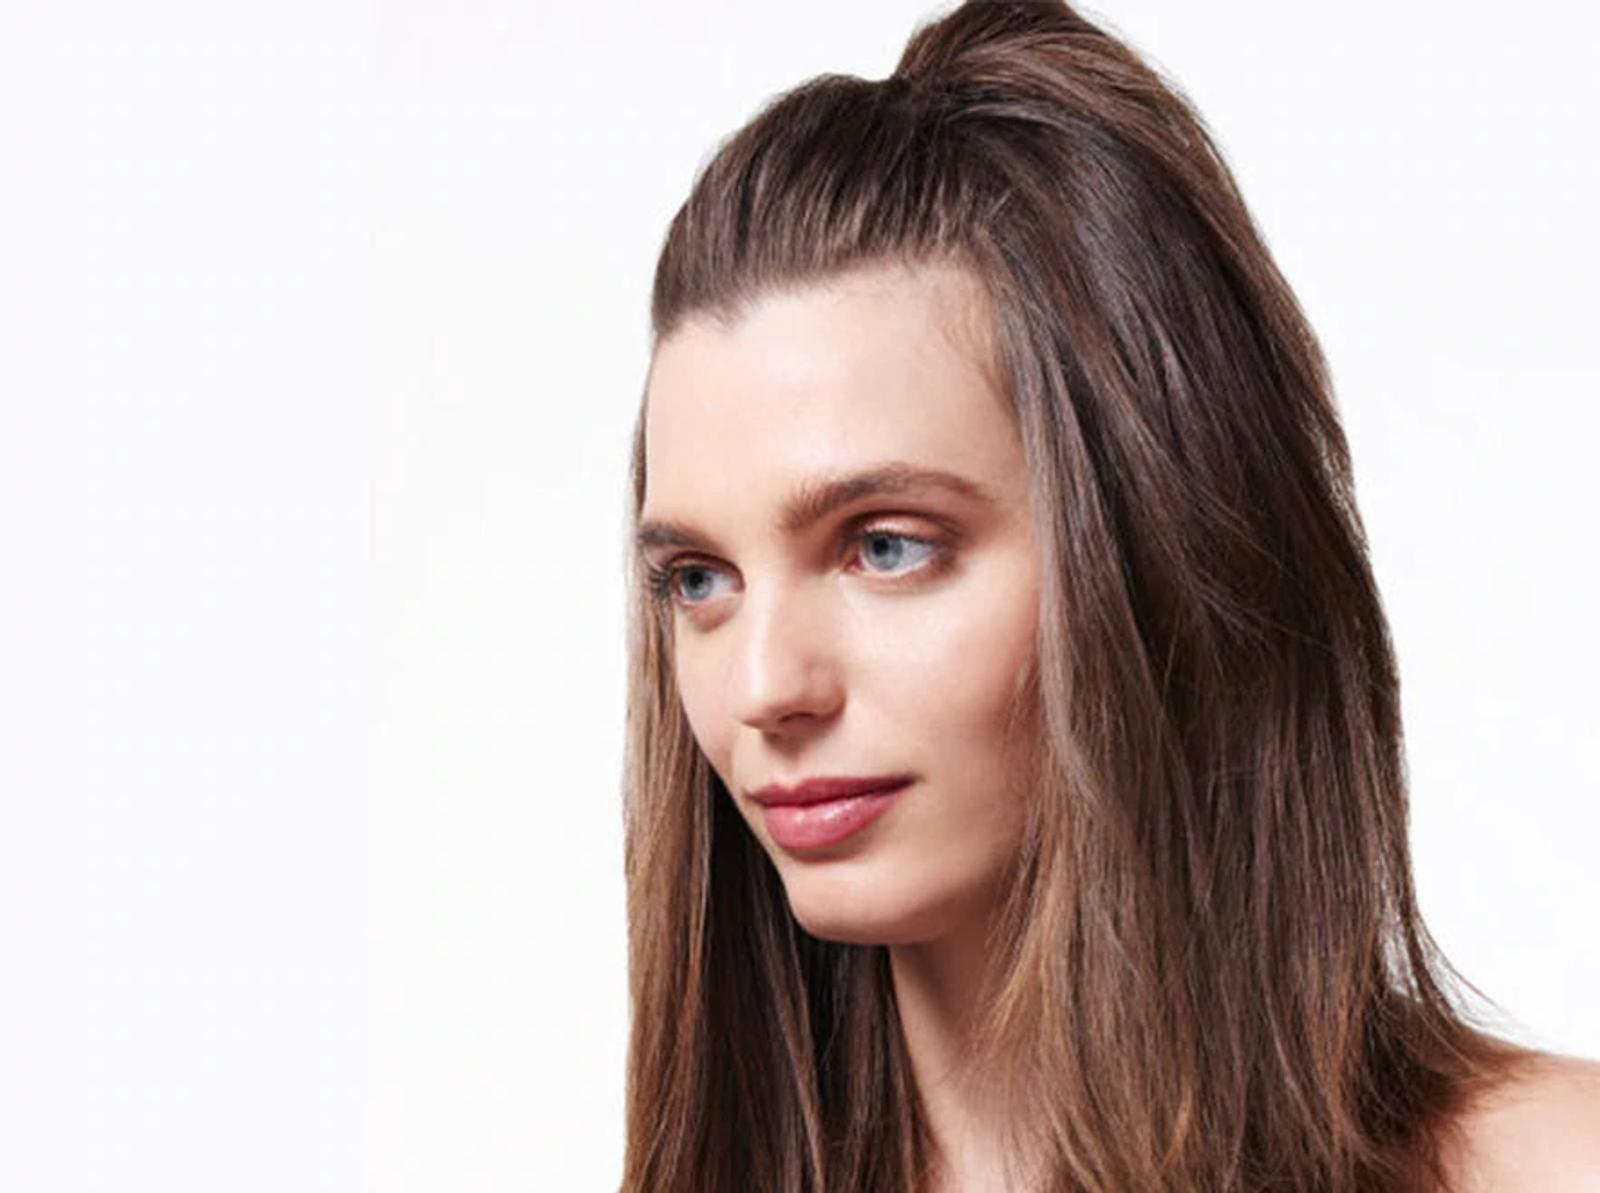 Model with Half Down Hairstyle